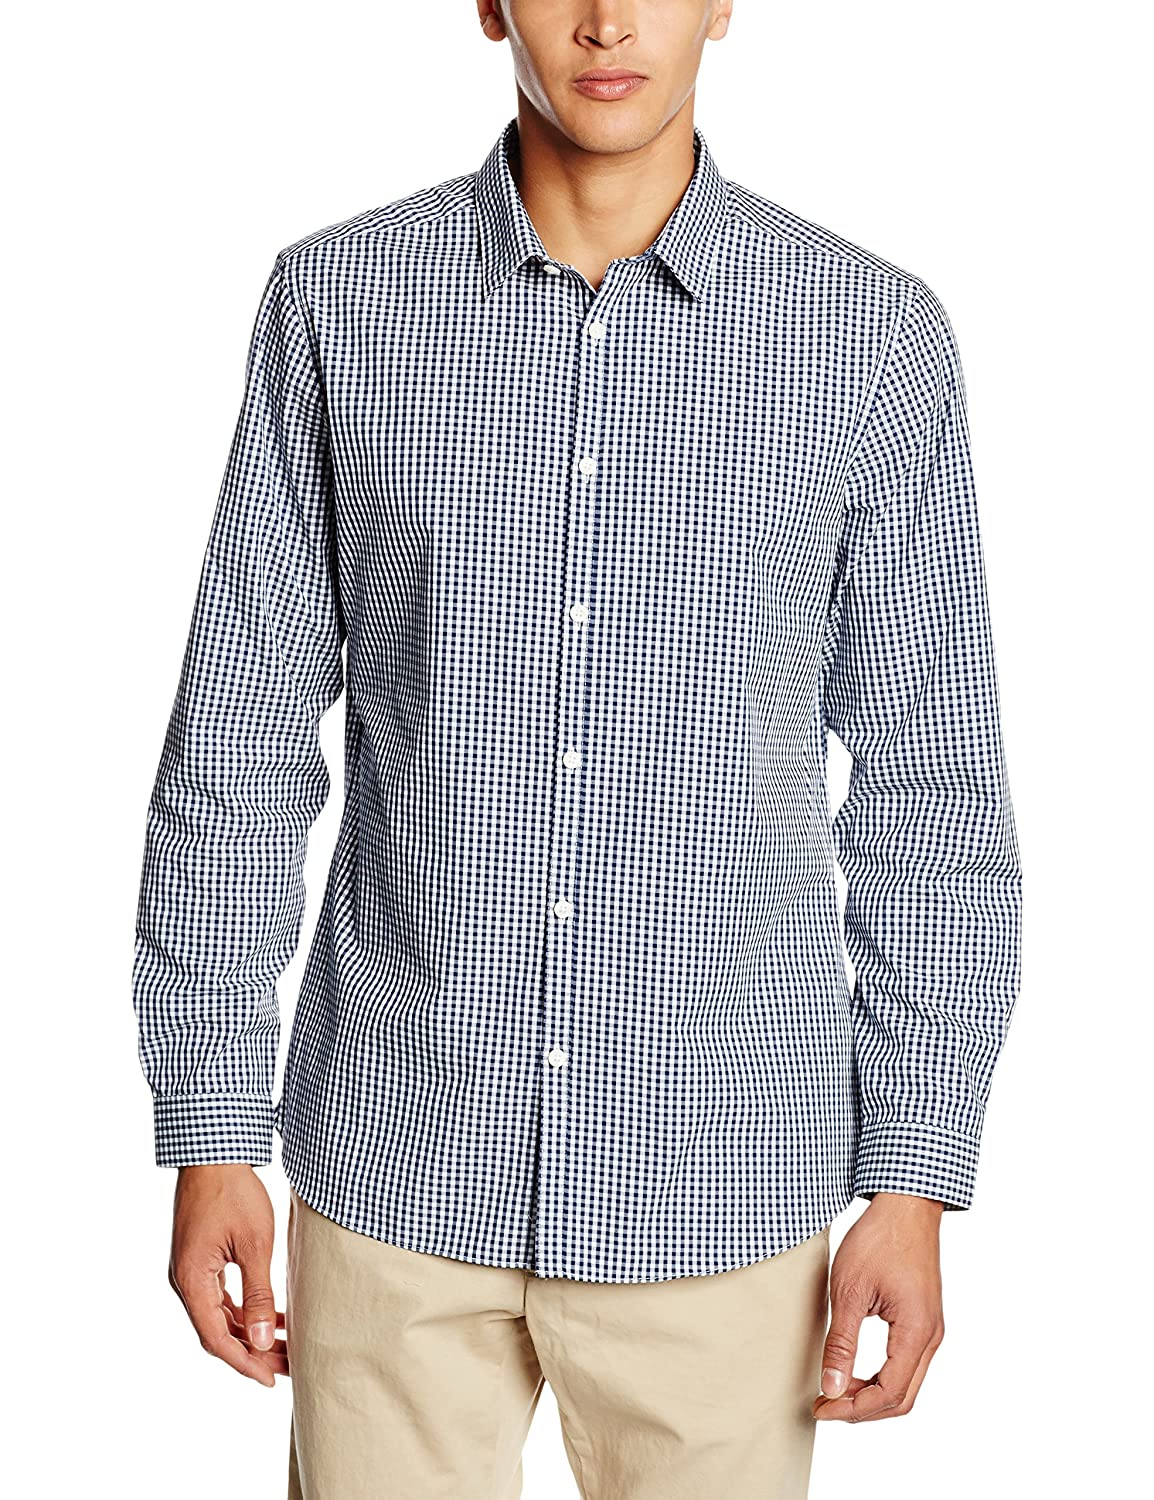 New Look Smart Gingham, Camisa para Hombre